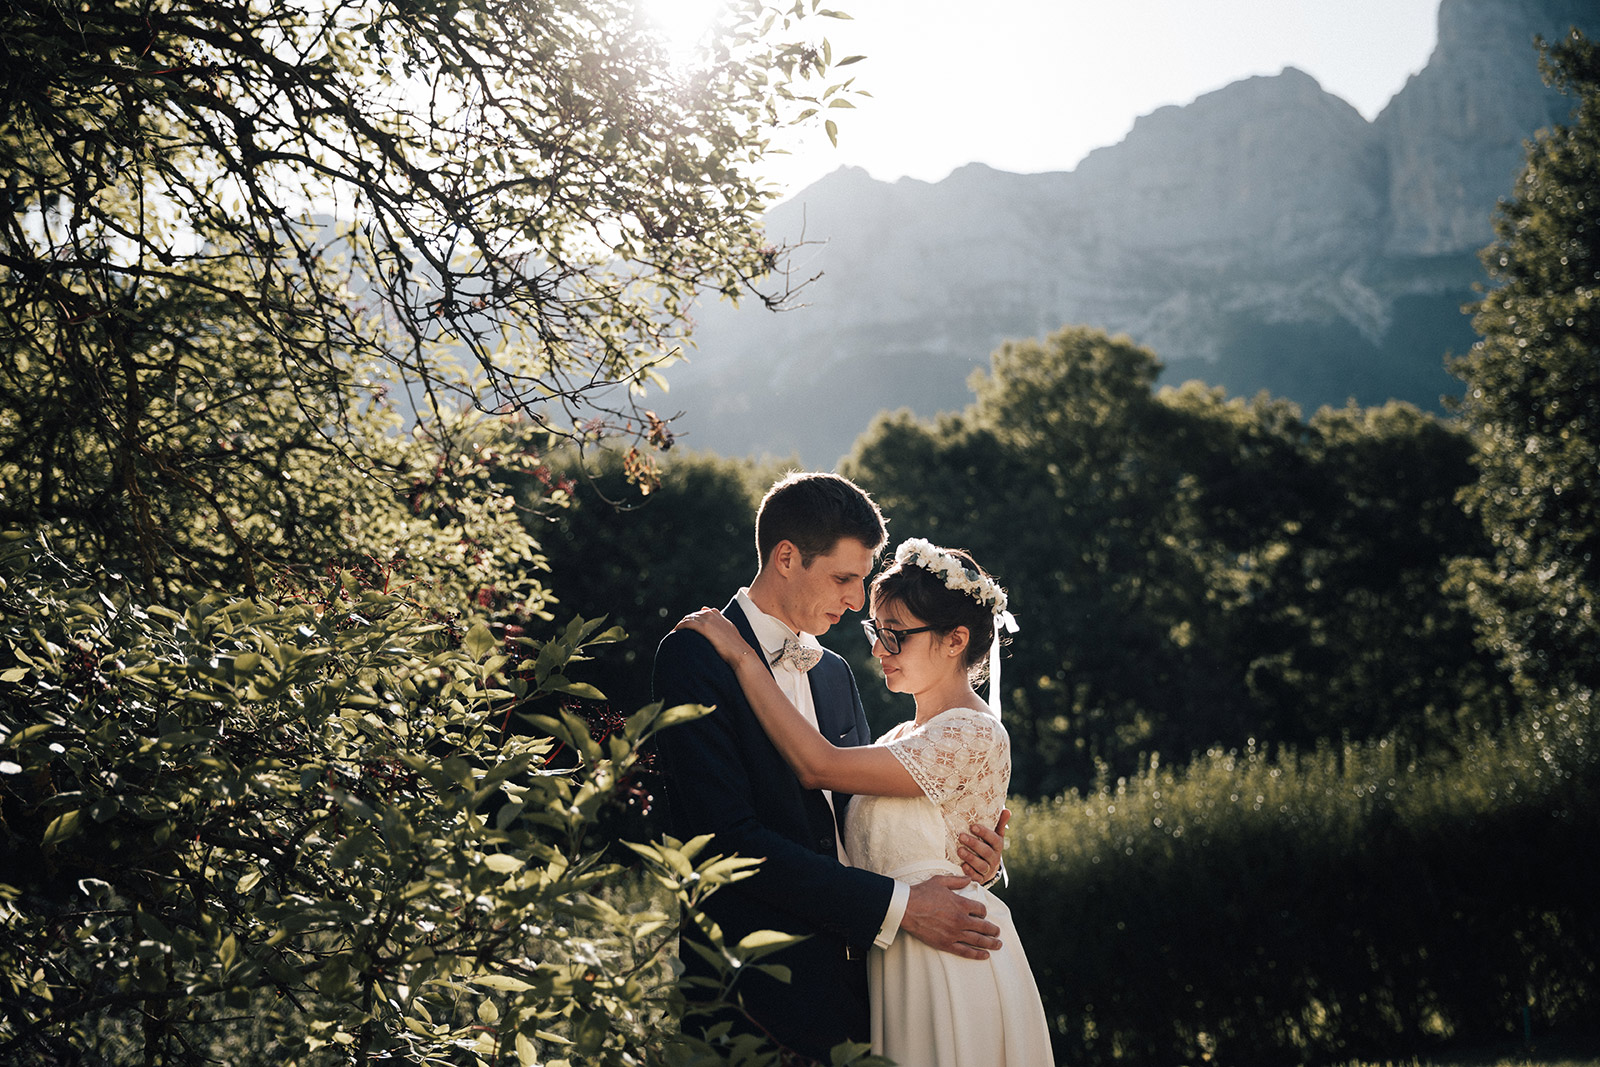 Photographe de mariage Isère Alpes Montagne Wedding photographer in the High Alps